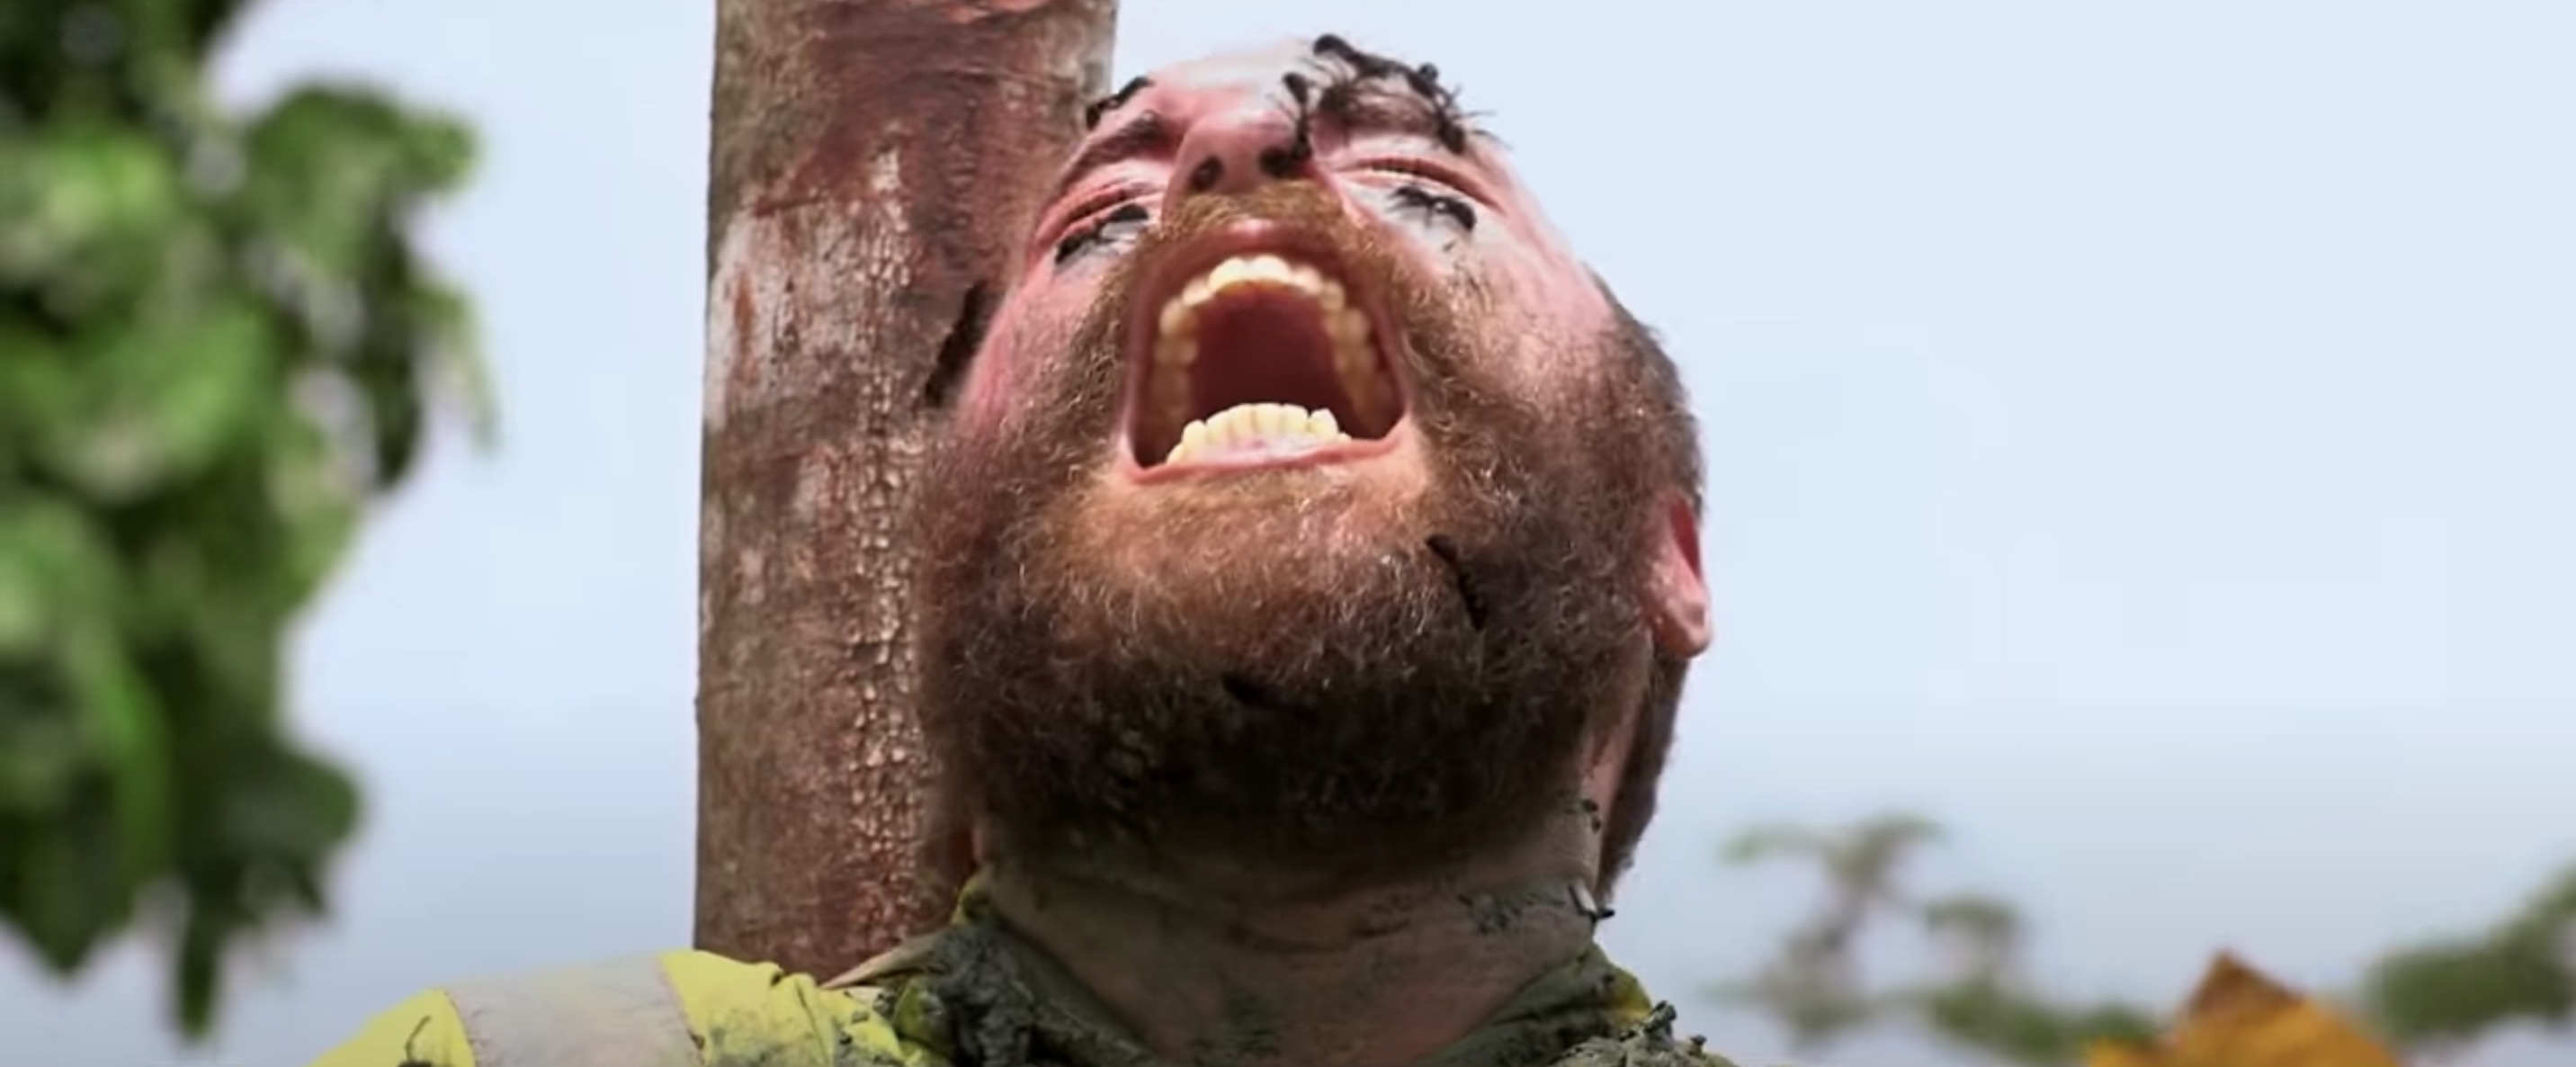 a man with ants eating at his face as he screams in pain